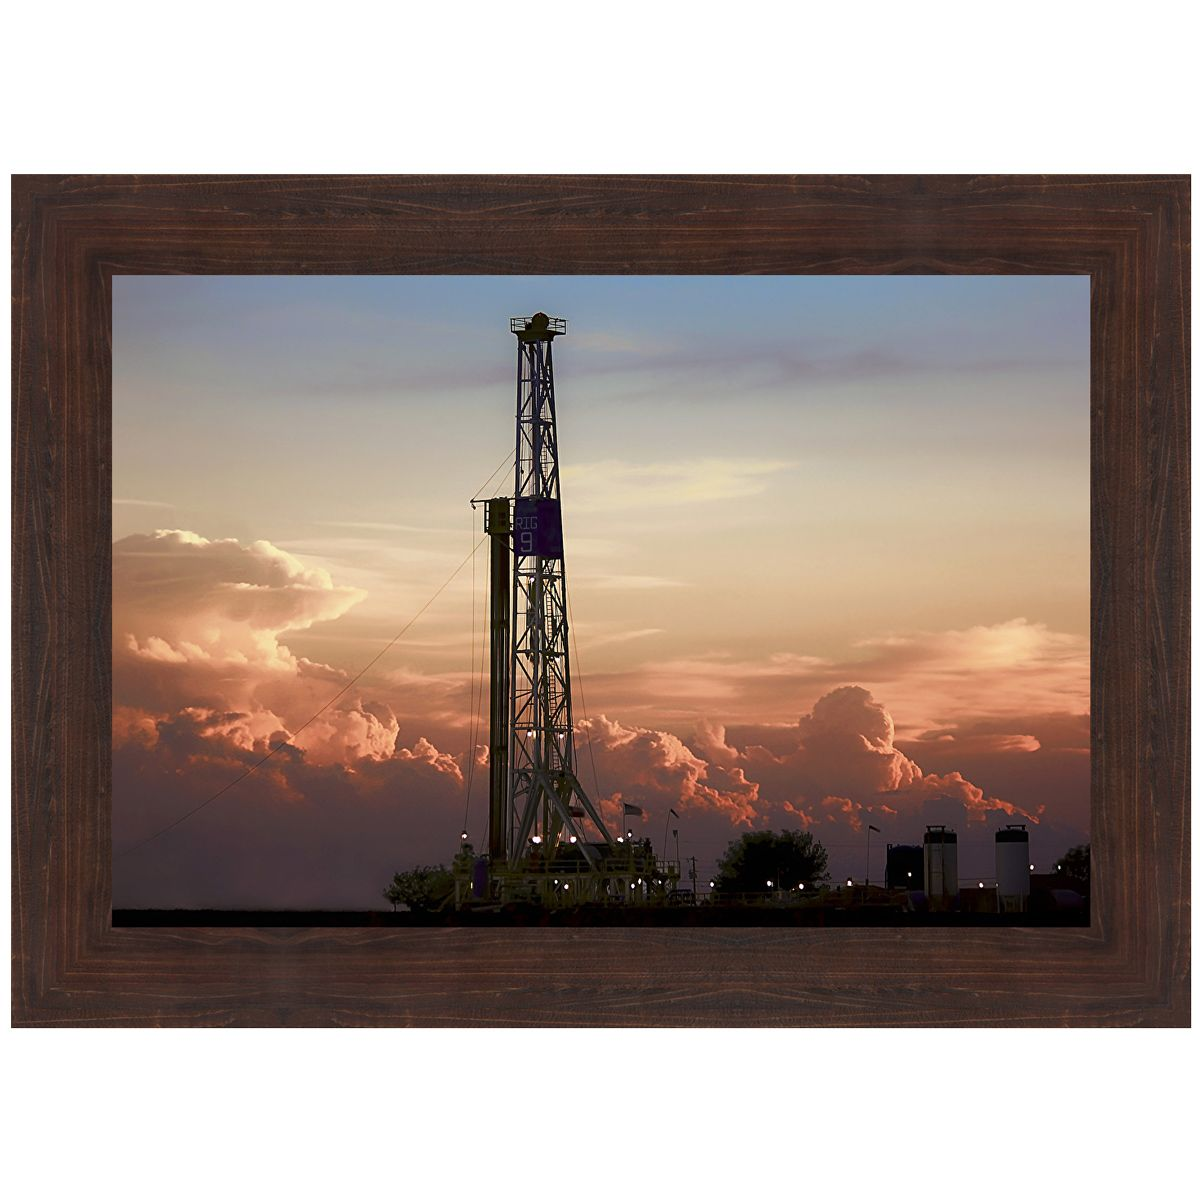 Oilfield at Dusk Framed Art